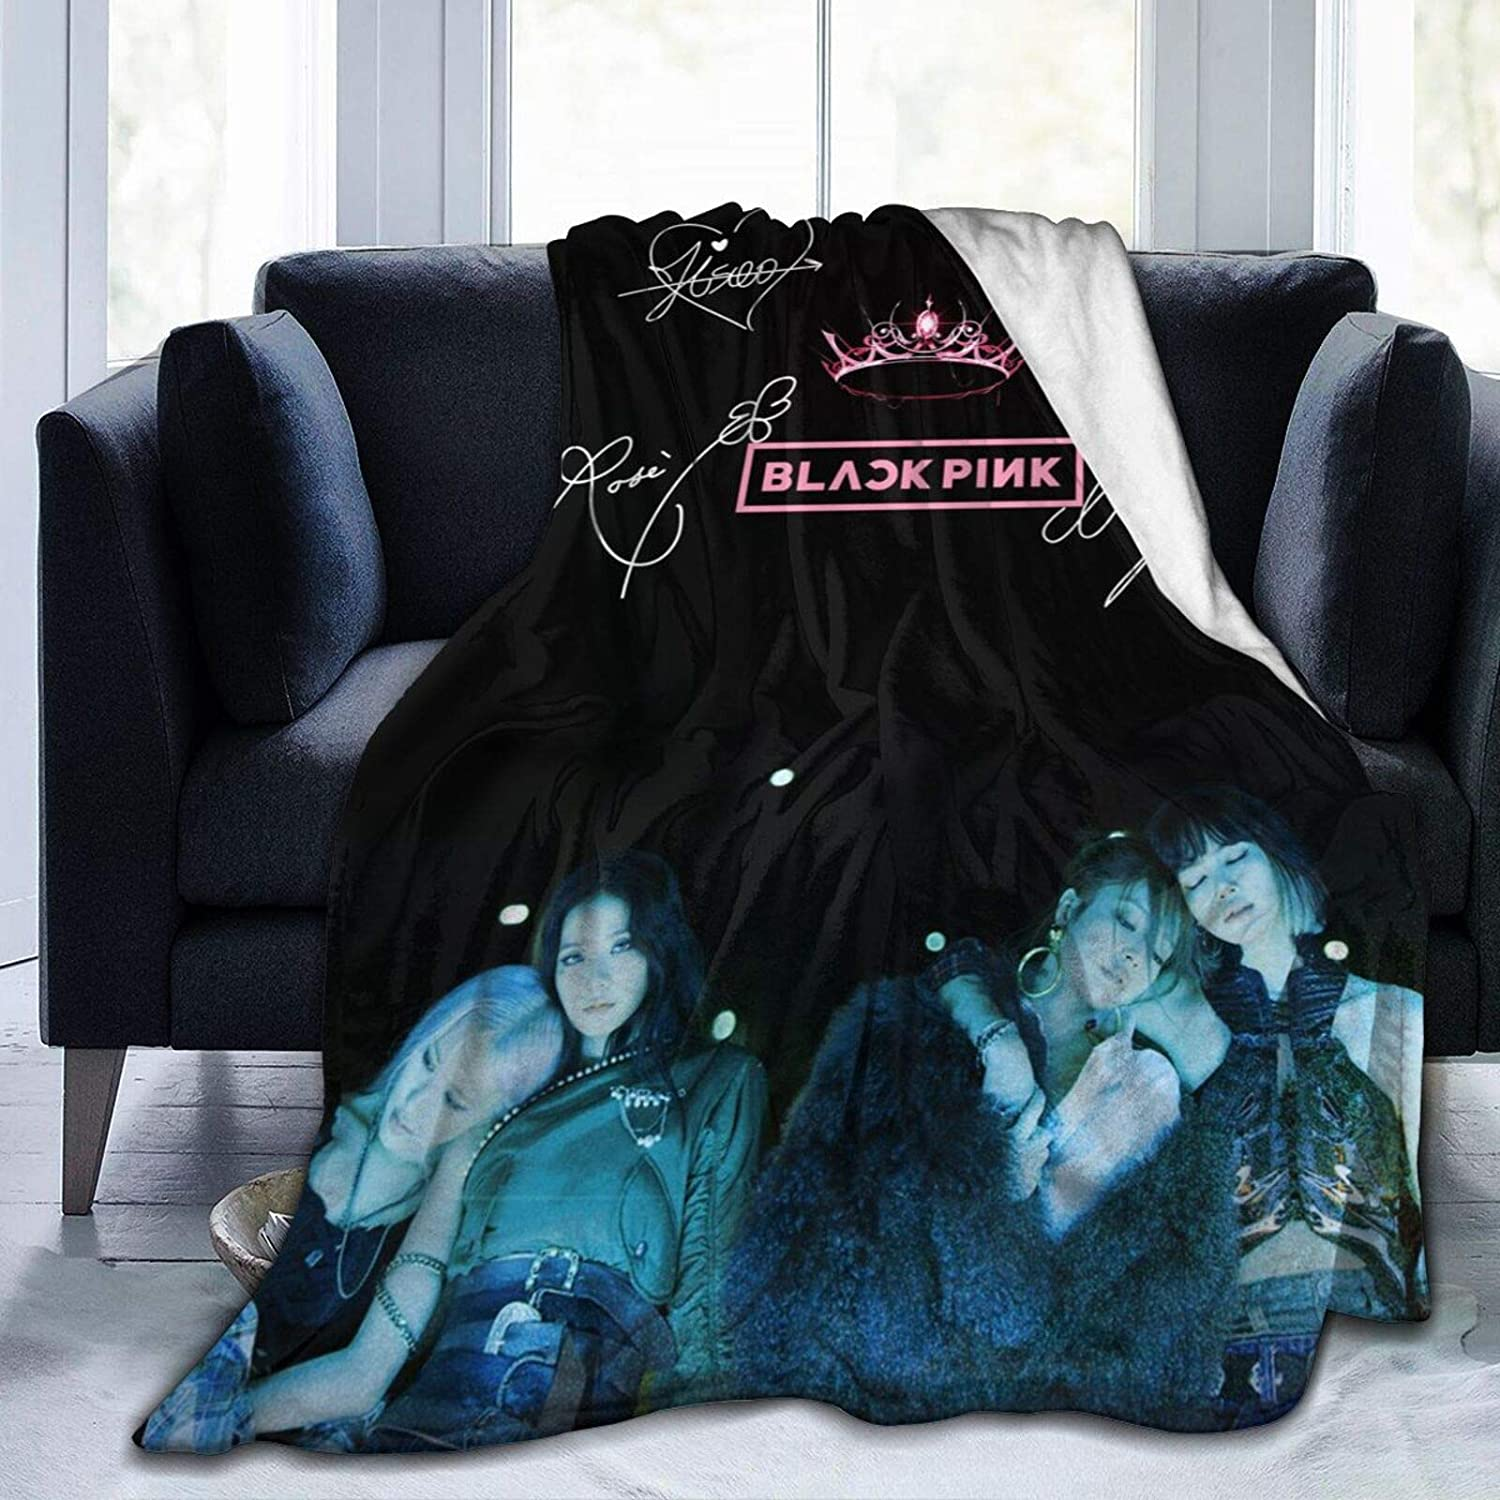 BeTLLEX Blackpink Kpop Girl Blanket Vacuum Packaging Blanket Textured Super-Soft Flannel Fashion Fun Stylish Blanket Bedding for Couch Sofa Bed Living Room//Bedroom 50X40